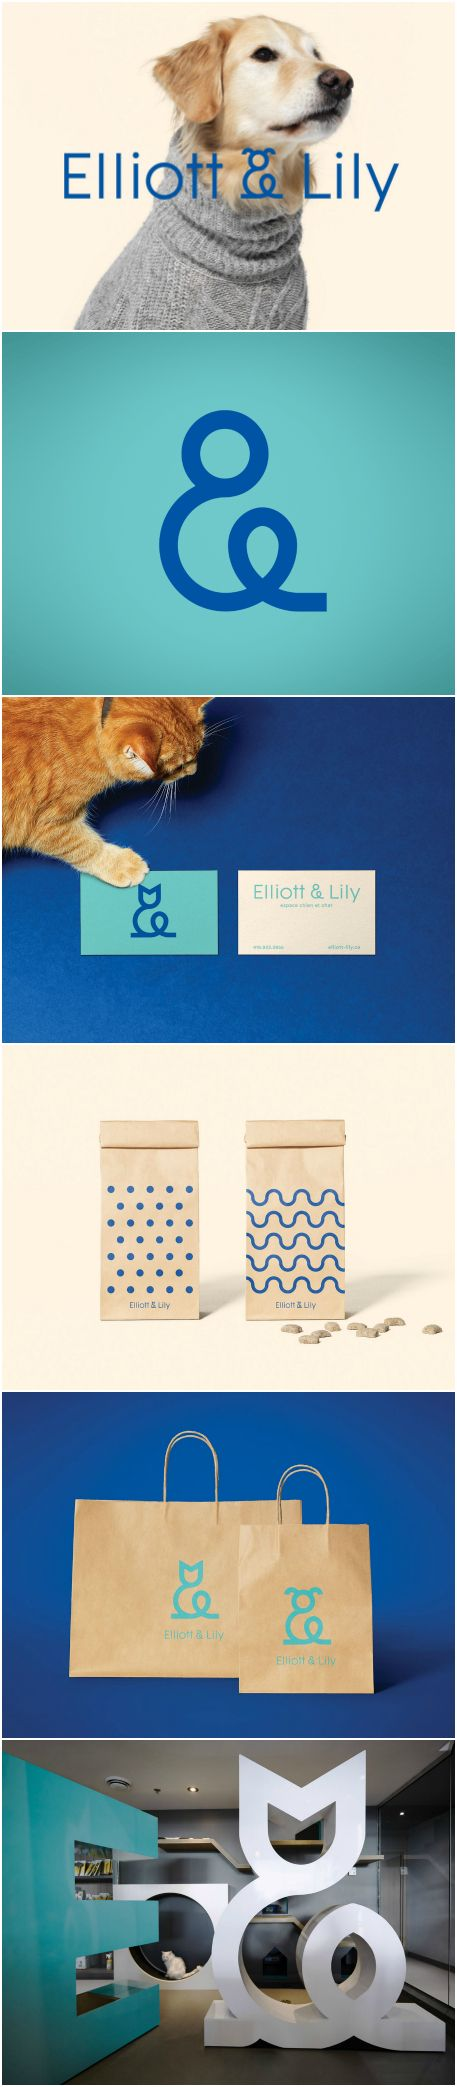 Design Agency: Agency lg2 Project name: Elliott & Lily Location: Canada Category: #Pets